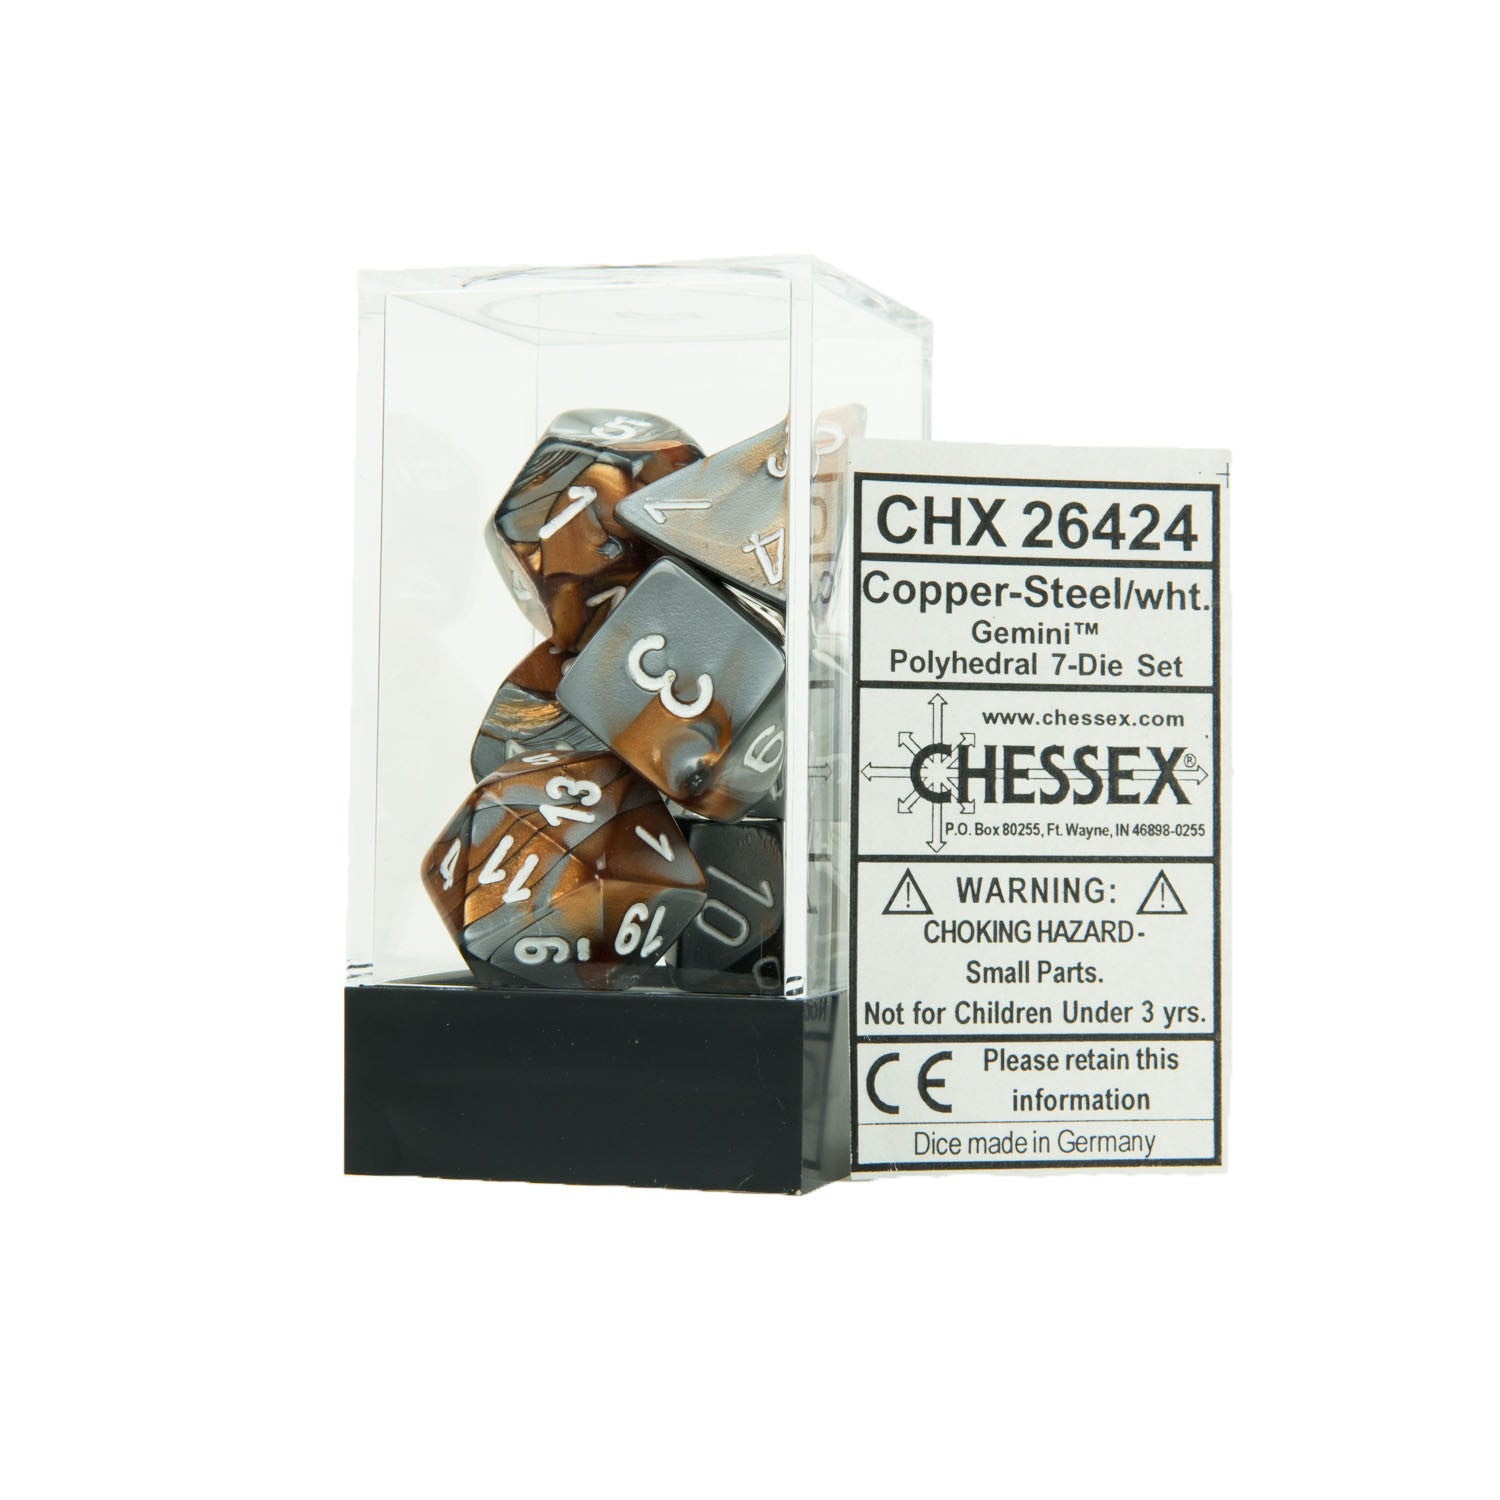 Chessex CHX26424 Copper-Steel w/white Gemini™ Polyhedral Dice Set